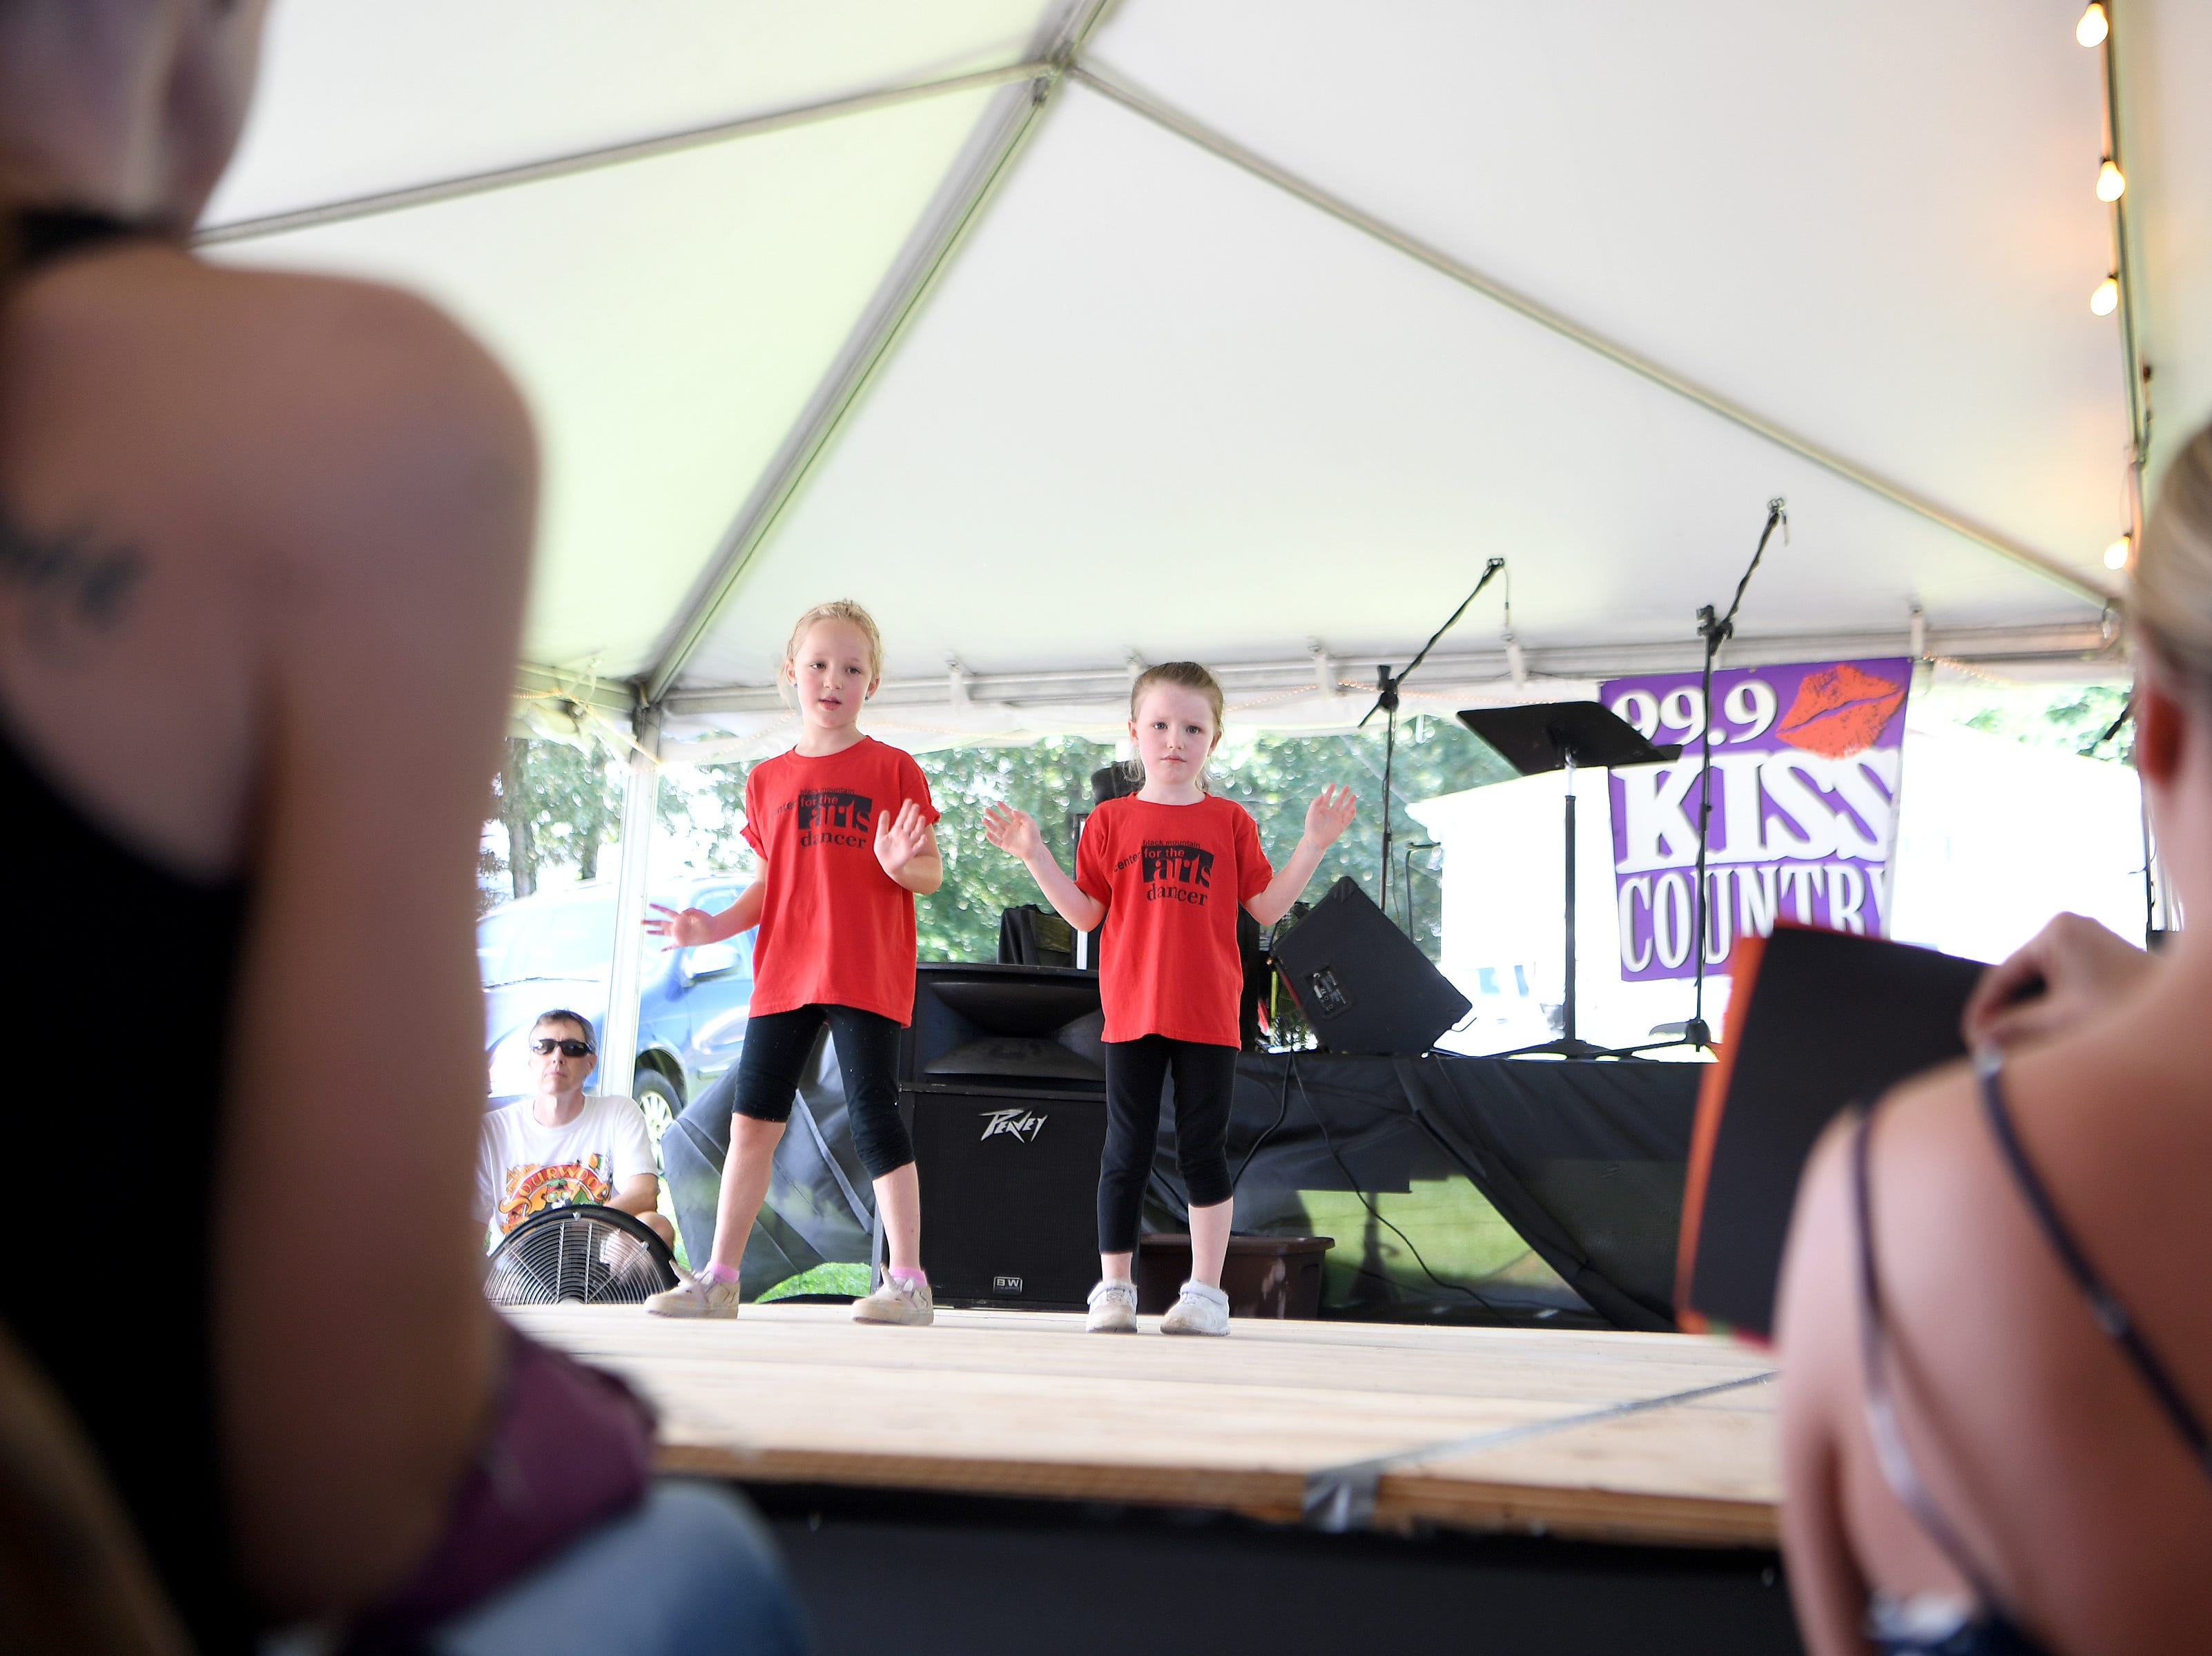 Dancing, music, games and lots of local arts and crafts were highlights of the 41st annual Sourwood Festival in Black Mountain on Saturday, Aug. 11, 2018.